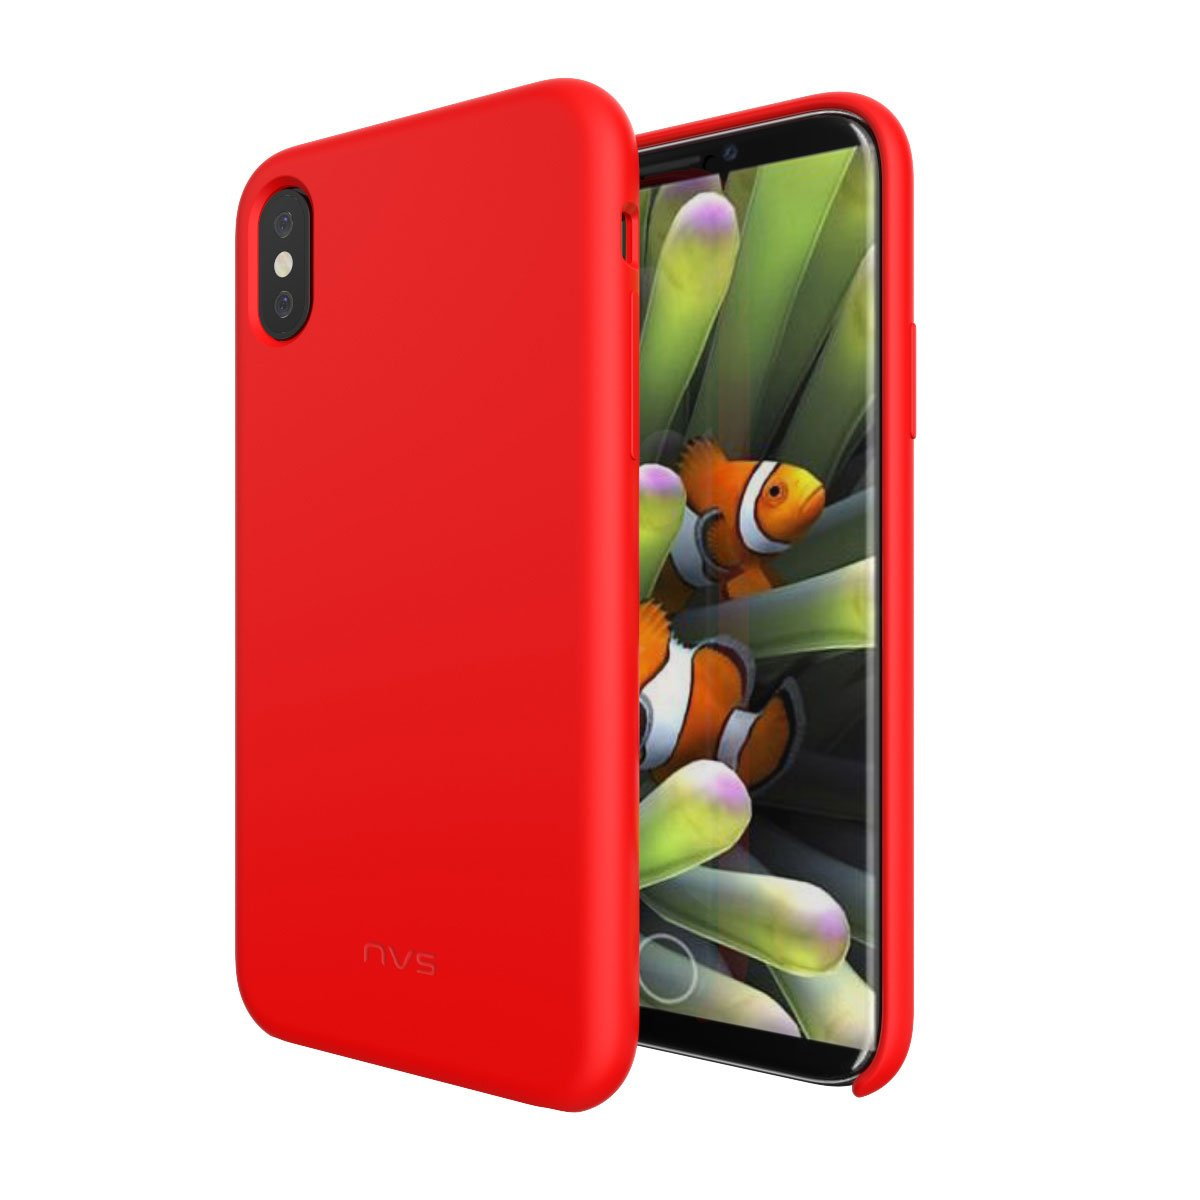 NVS Soft Grip Case for iPhone X/Xs